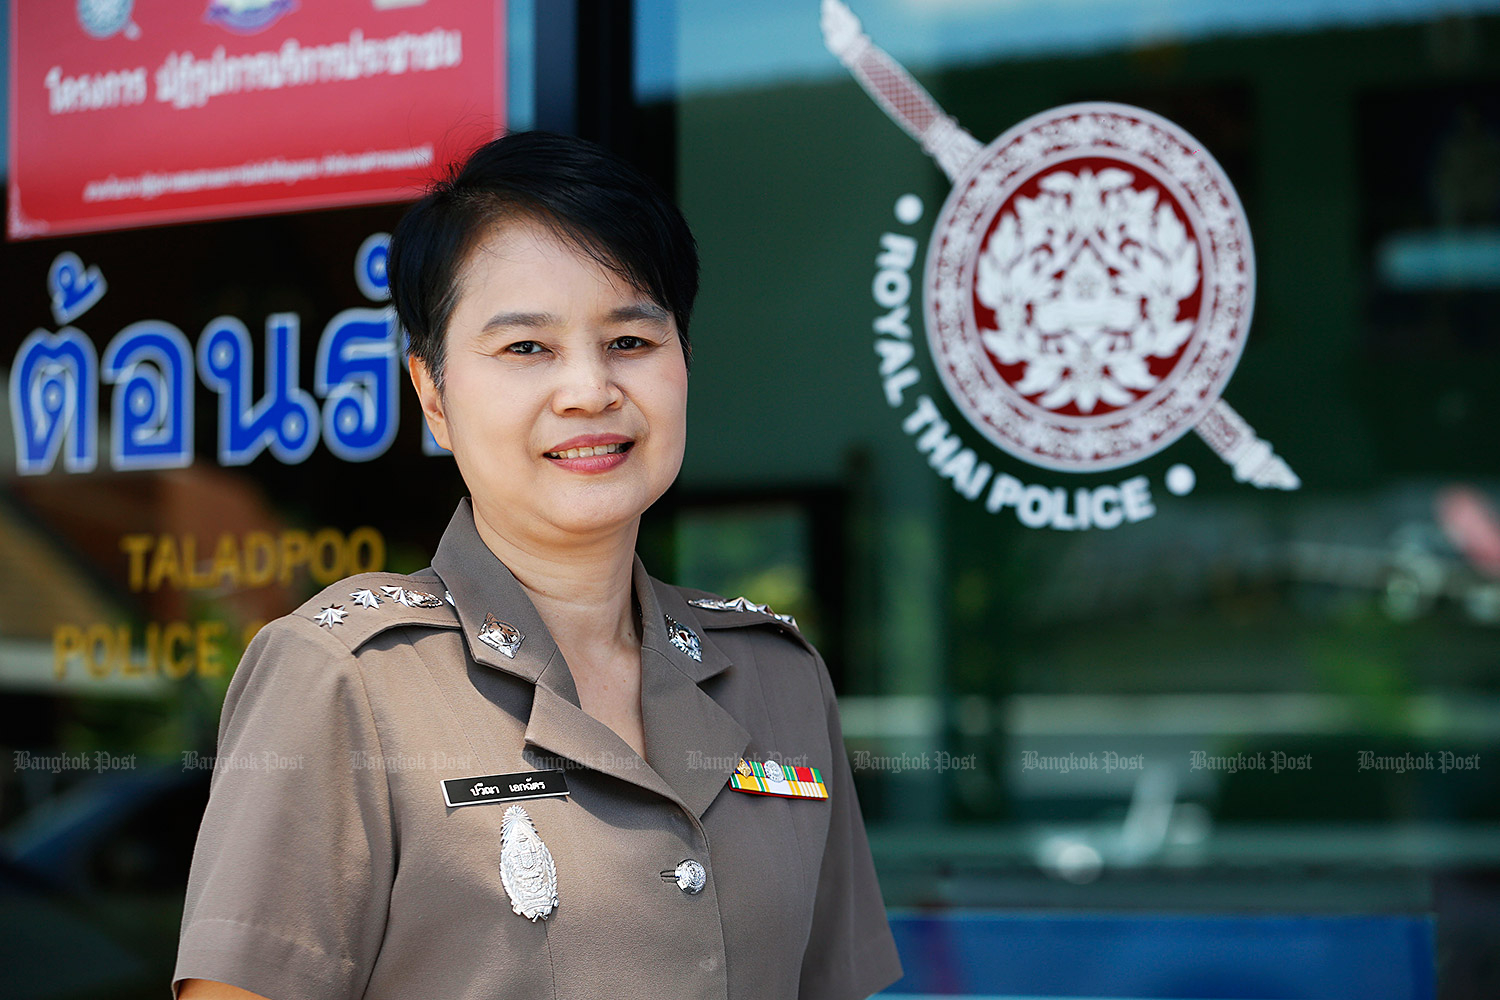 Female cop shatters glass ceiling